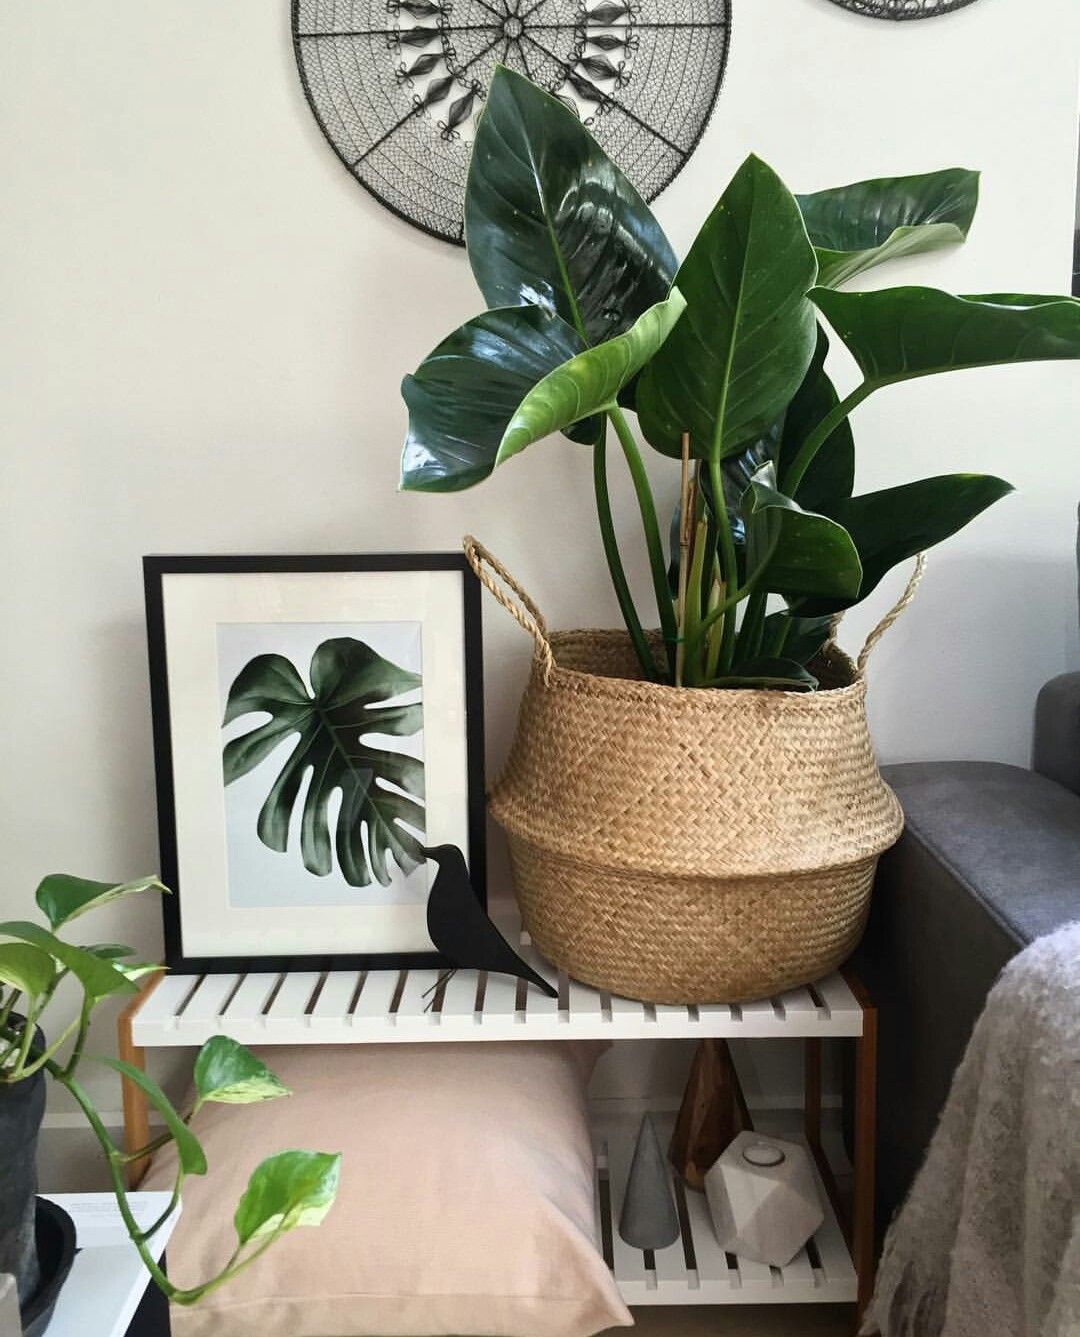 Pin by Anastasia on Kmart Inspired  Home decor hacks